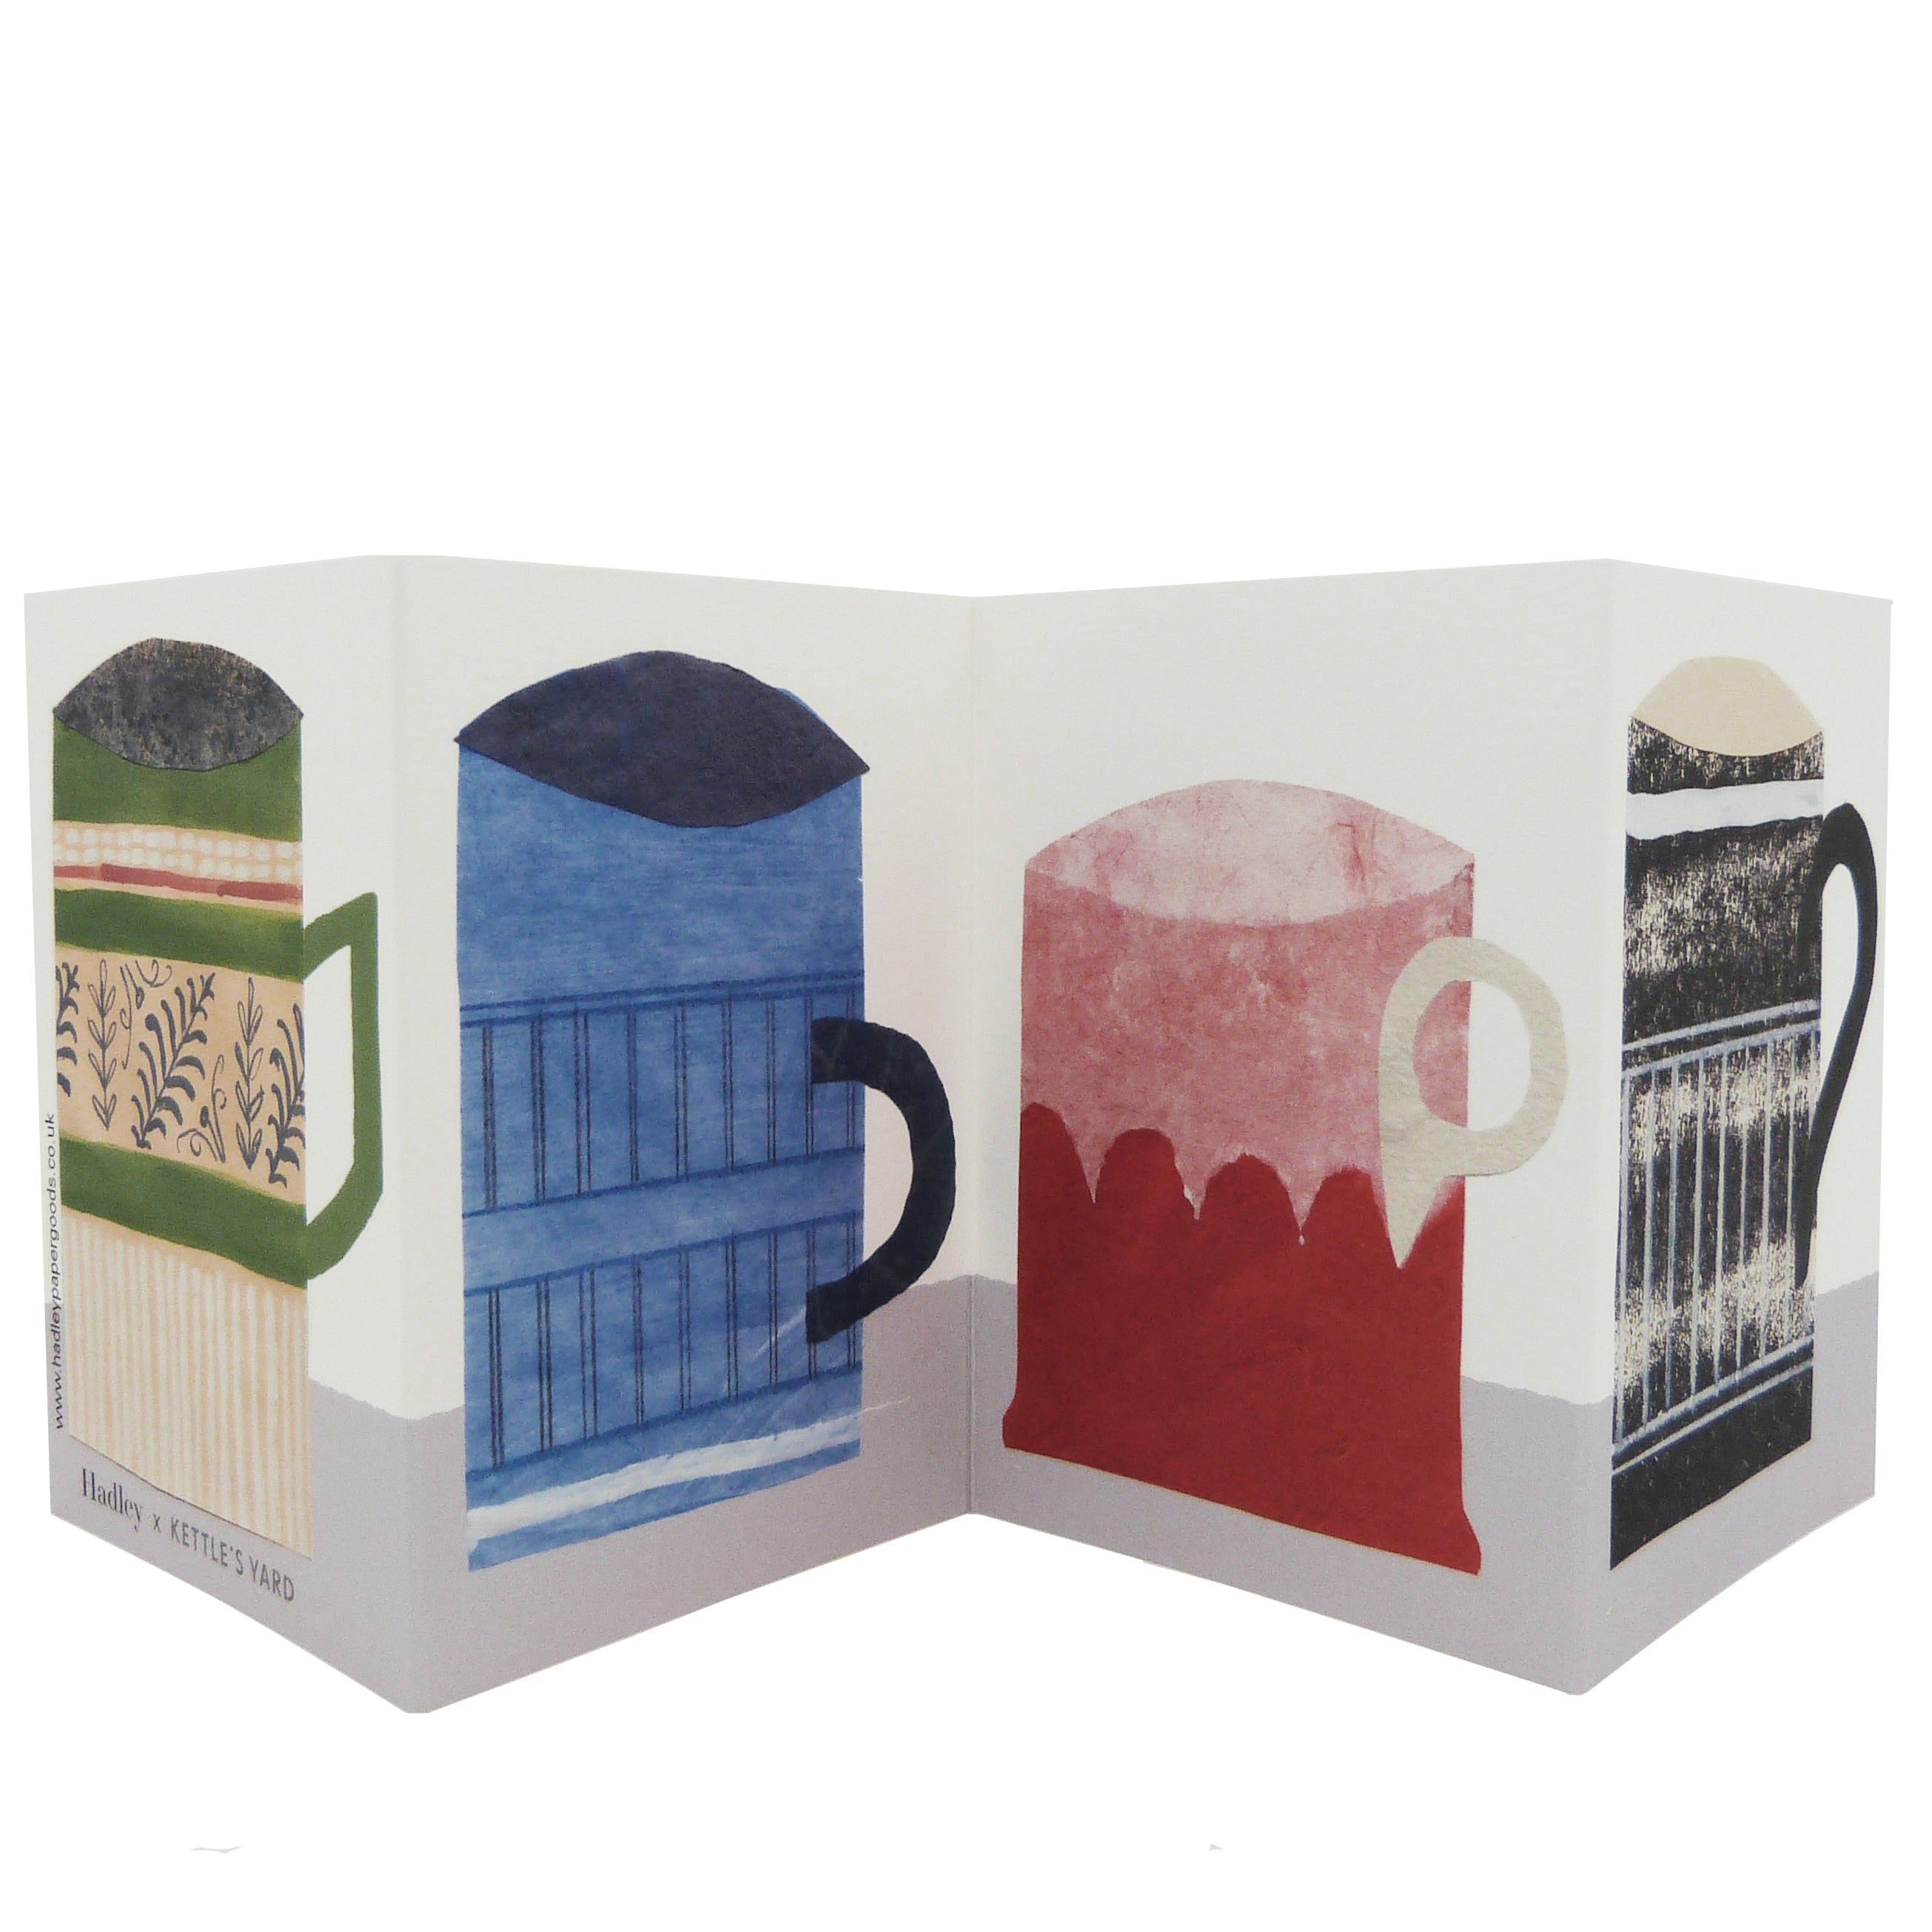 Hadley Paper Goods Hadley x Kettle's Yard Mugs Folding Greetings Card 2